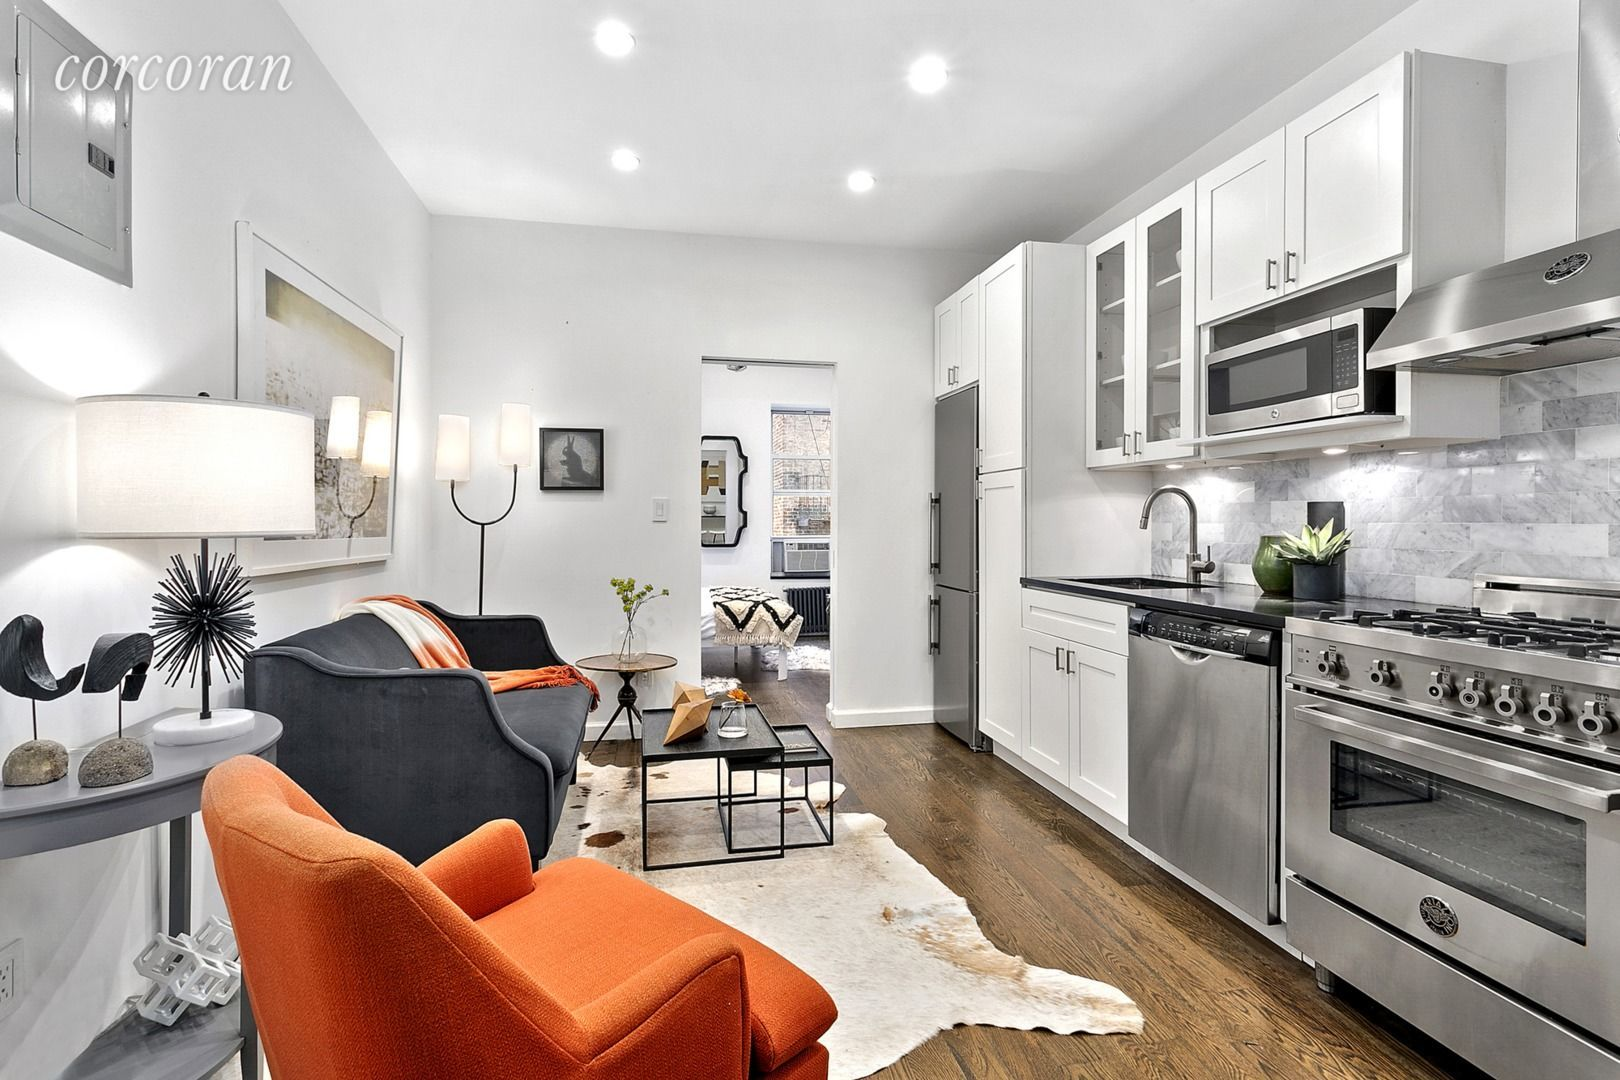 Apartment for sale at 408 West 25th Street, Apt 3RW